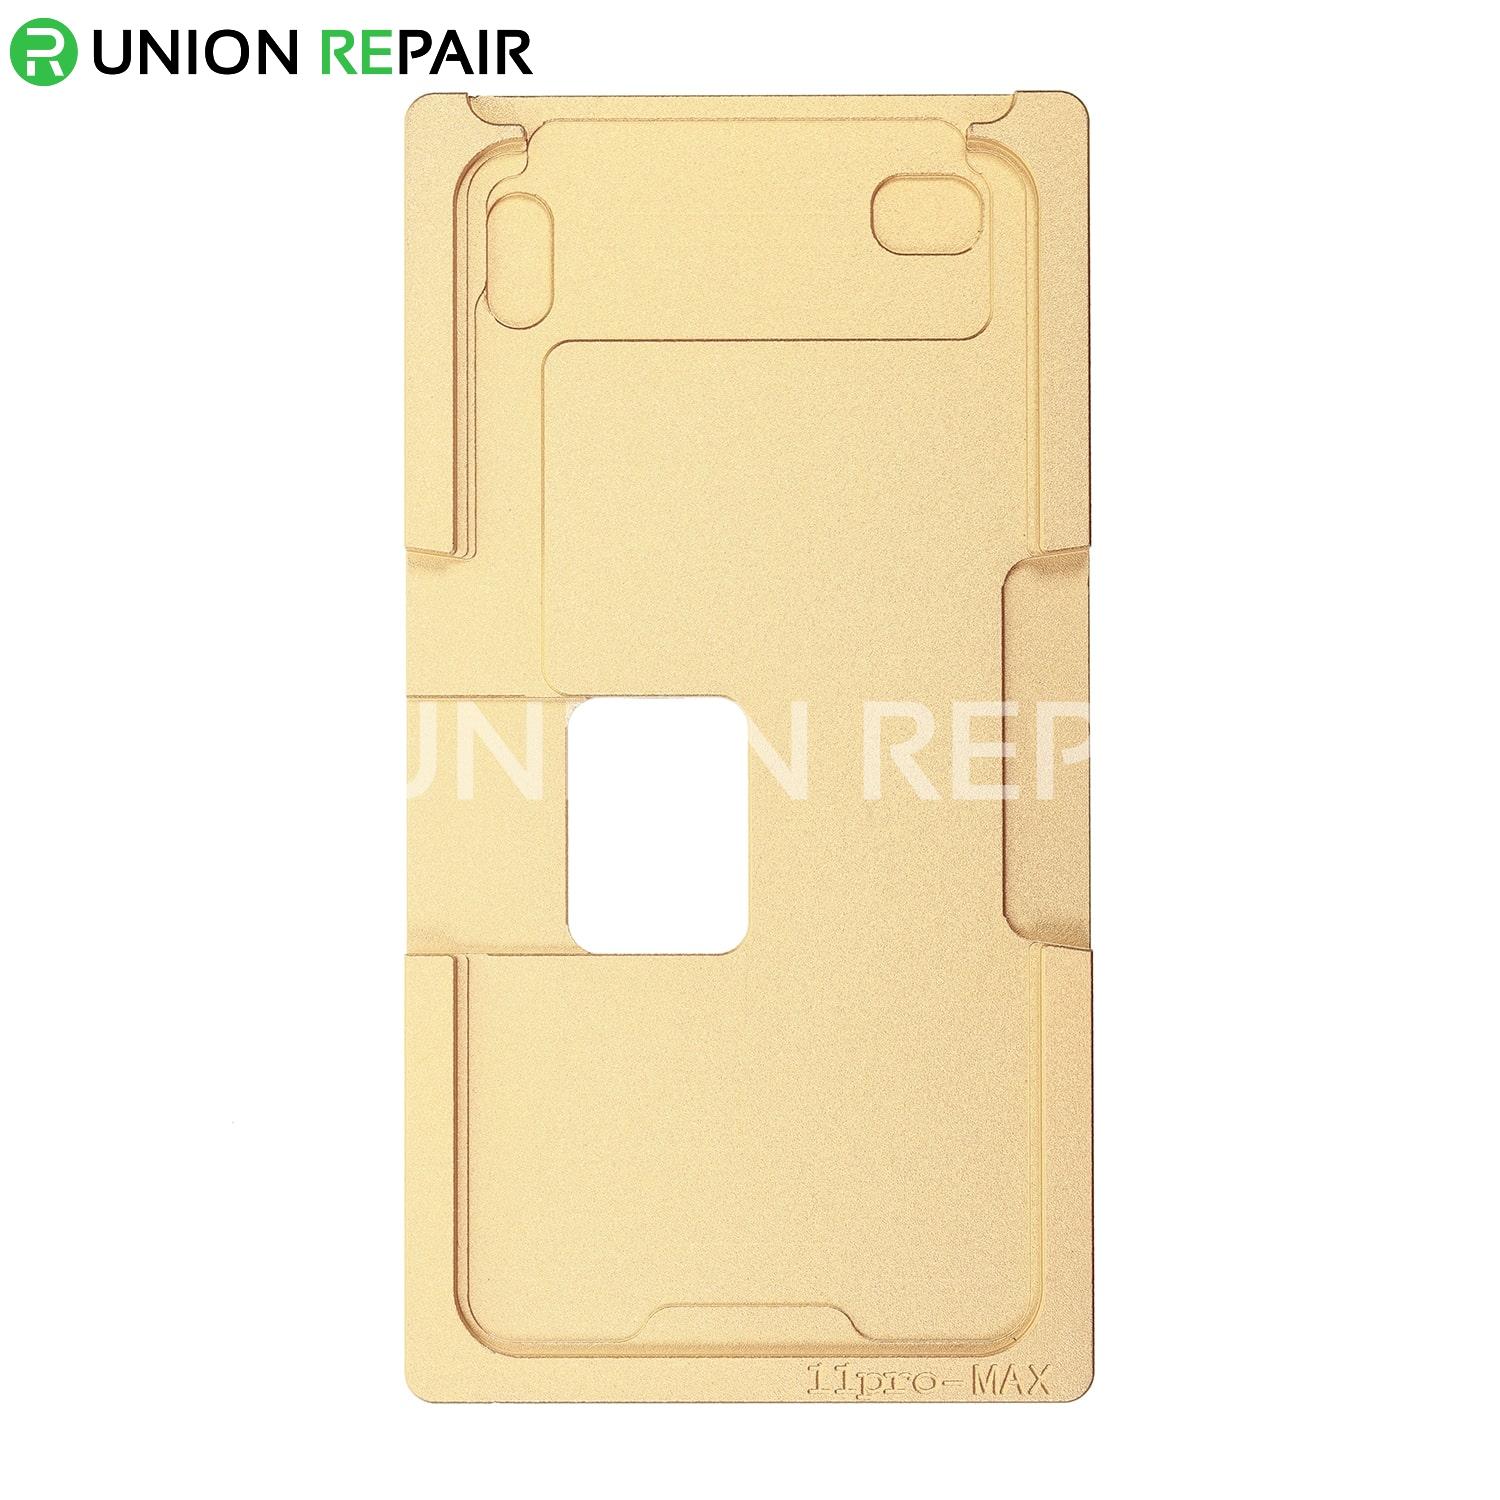 Aluminum Mould with Silicone Mat Mold Laminator for iPhone 11 Pro Max